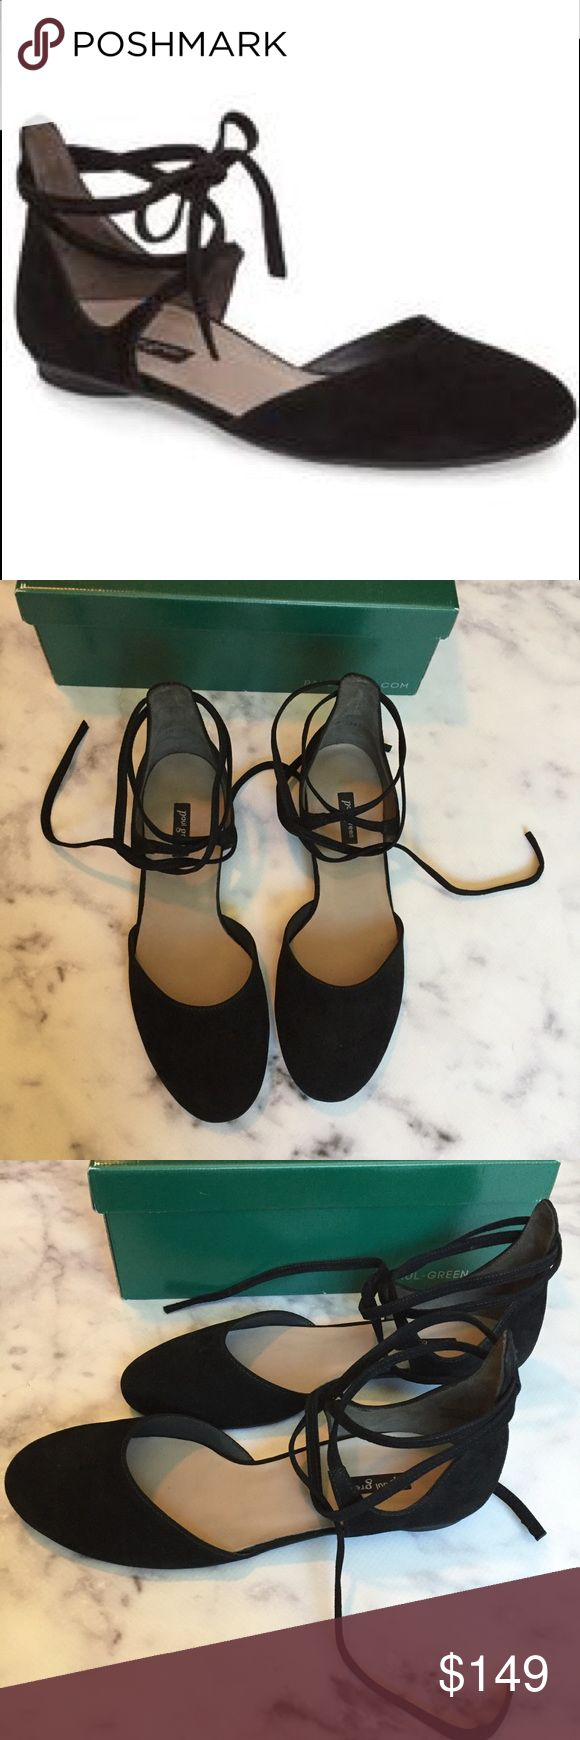 Paul Green NWB Suede Ankle Wrap Flats new with box black suede ankle wrap flats from Paul Green. super cute and comfy too! size 8.light sticker residue on soles but never worn. Paul Green Shoes Flats & Loafers